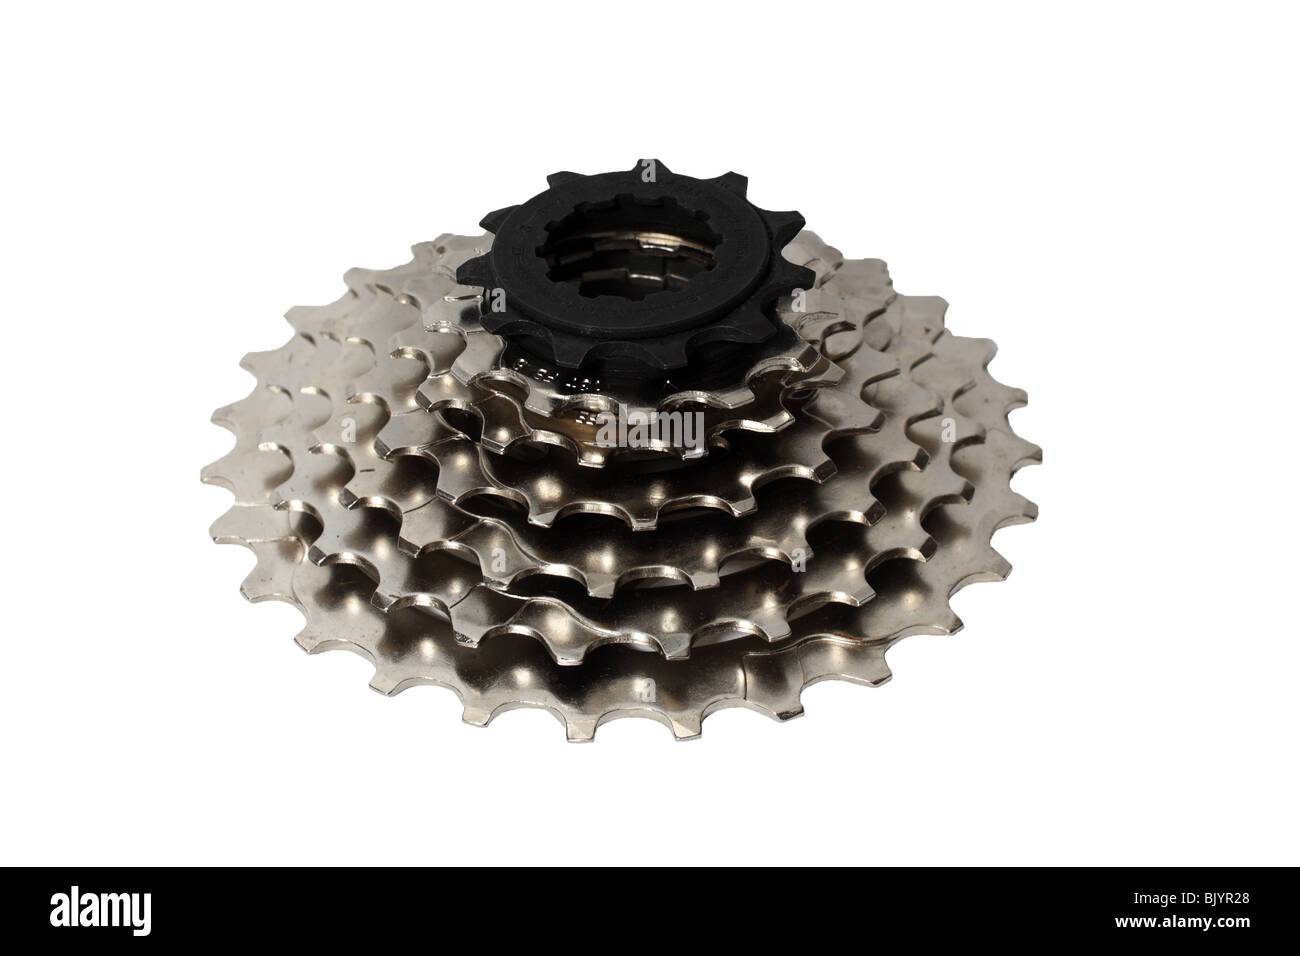 Shimano seven speed cassette for a bicycle isolated on a white background - Stock Image